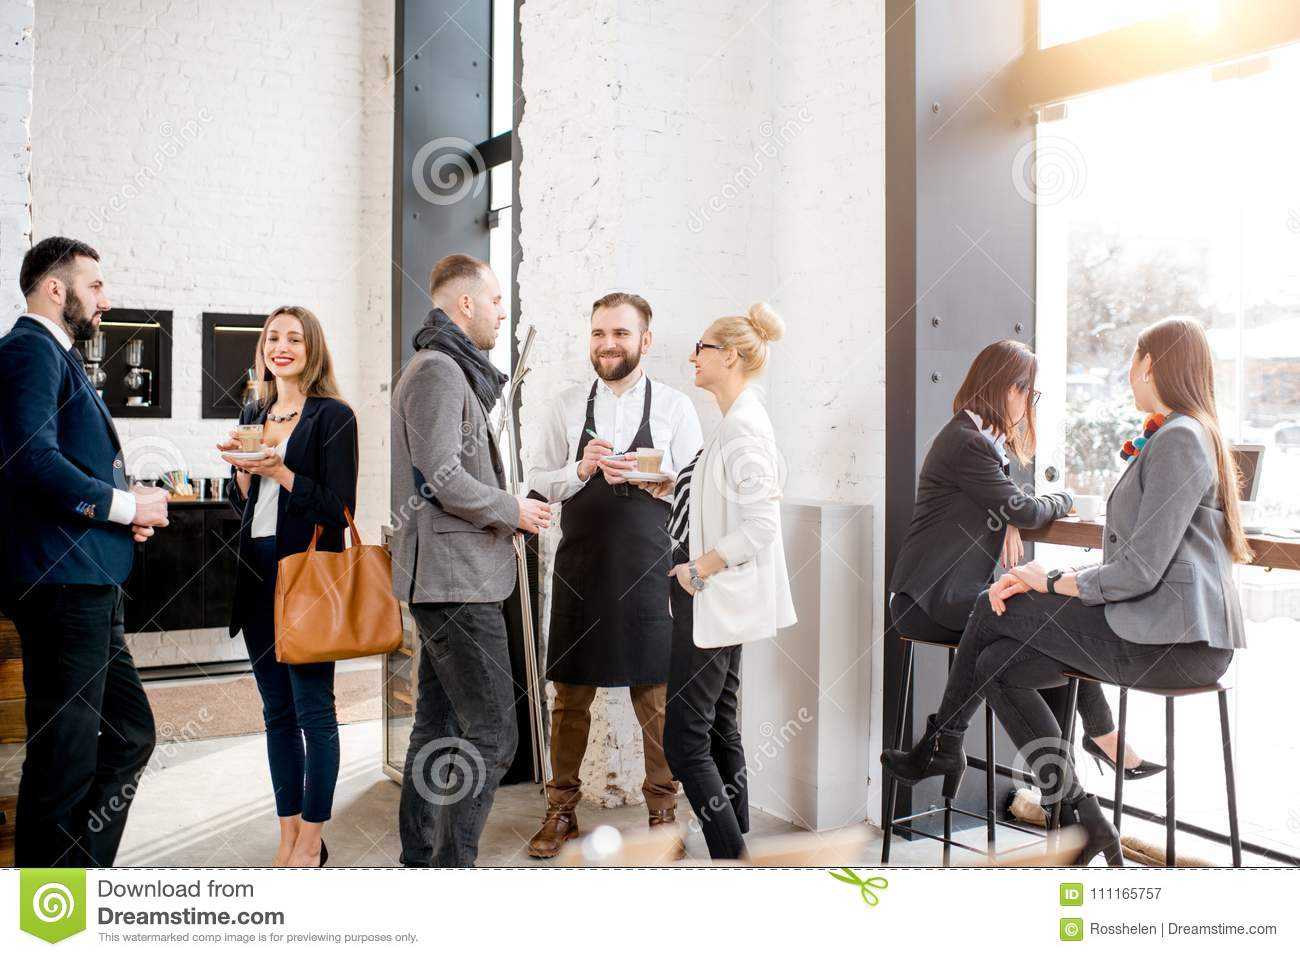 Business People In The Cafe Stock Image Image Of Meeting Order 111165757